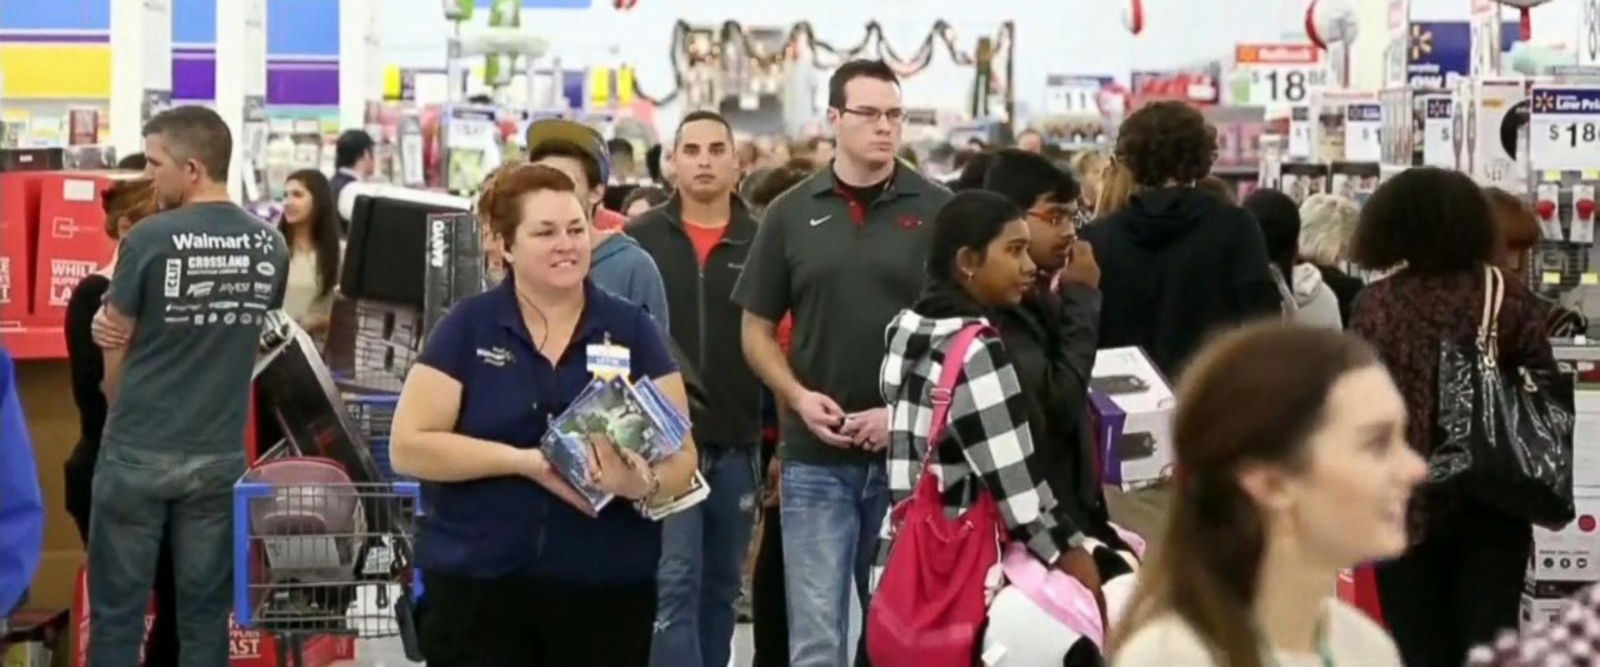 VIDEO: More than 164 million Americans gear up to shop this holiday weekend